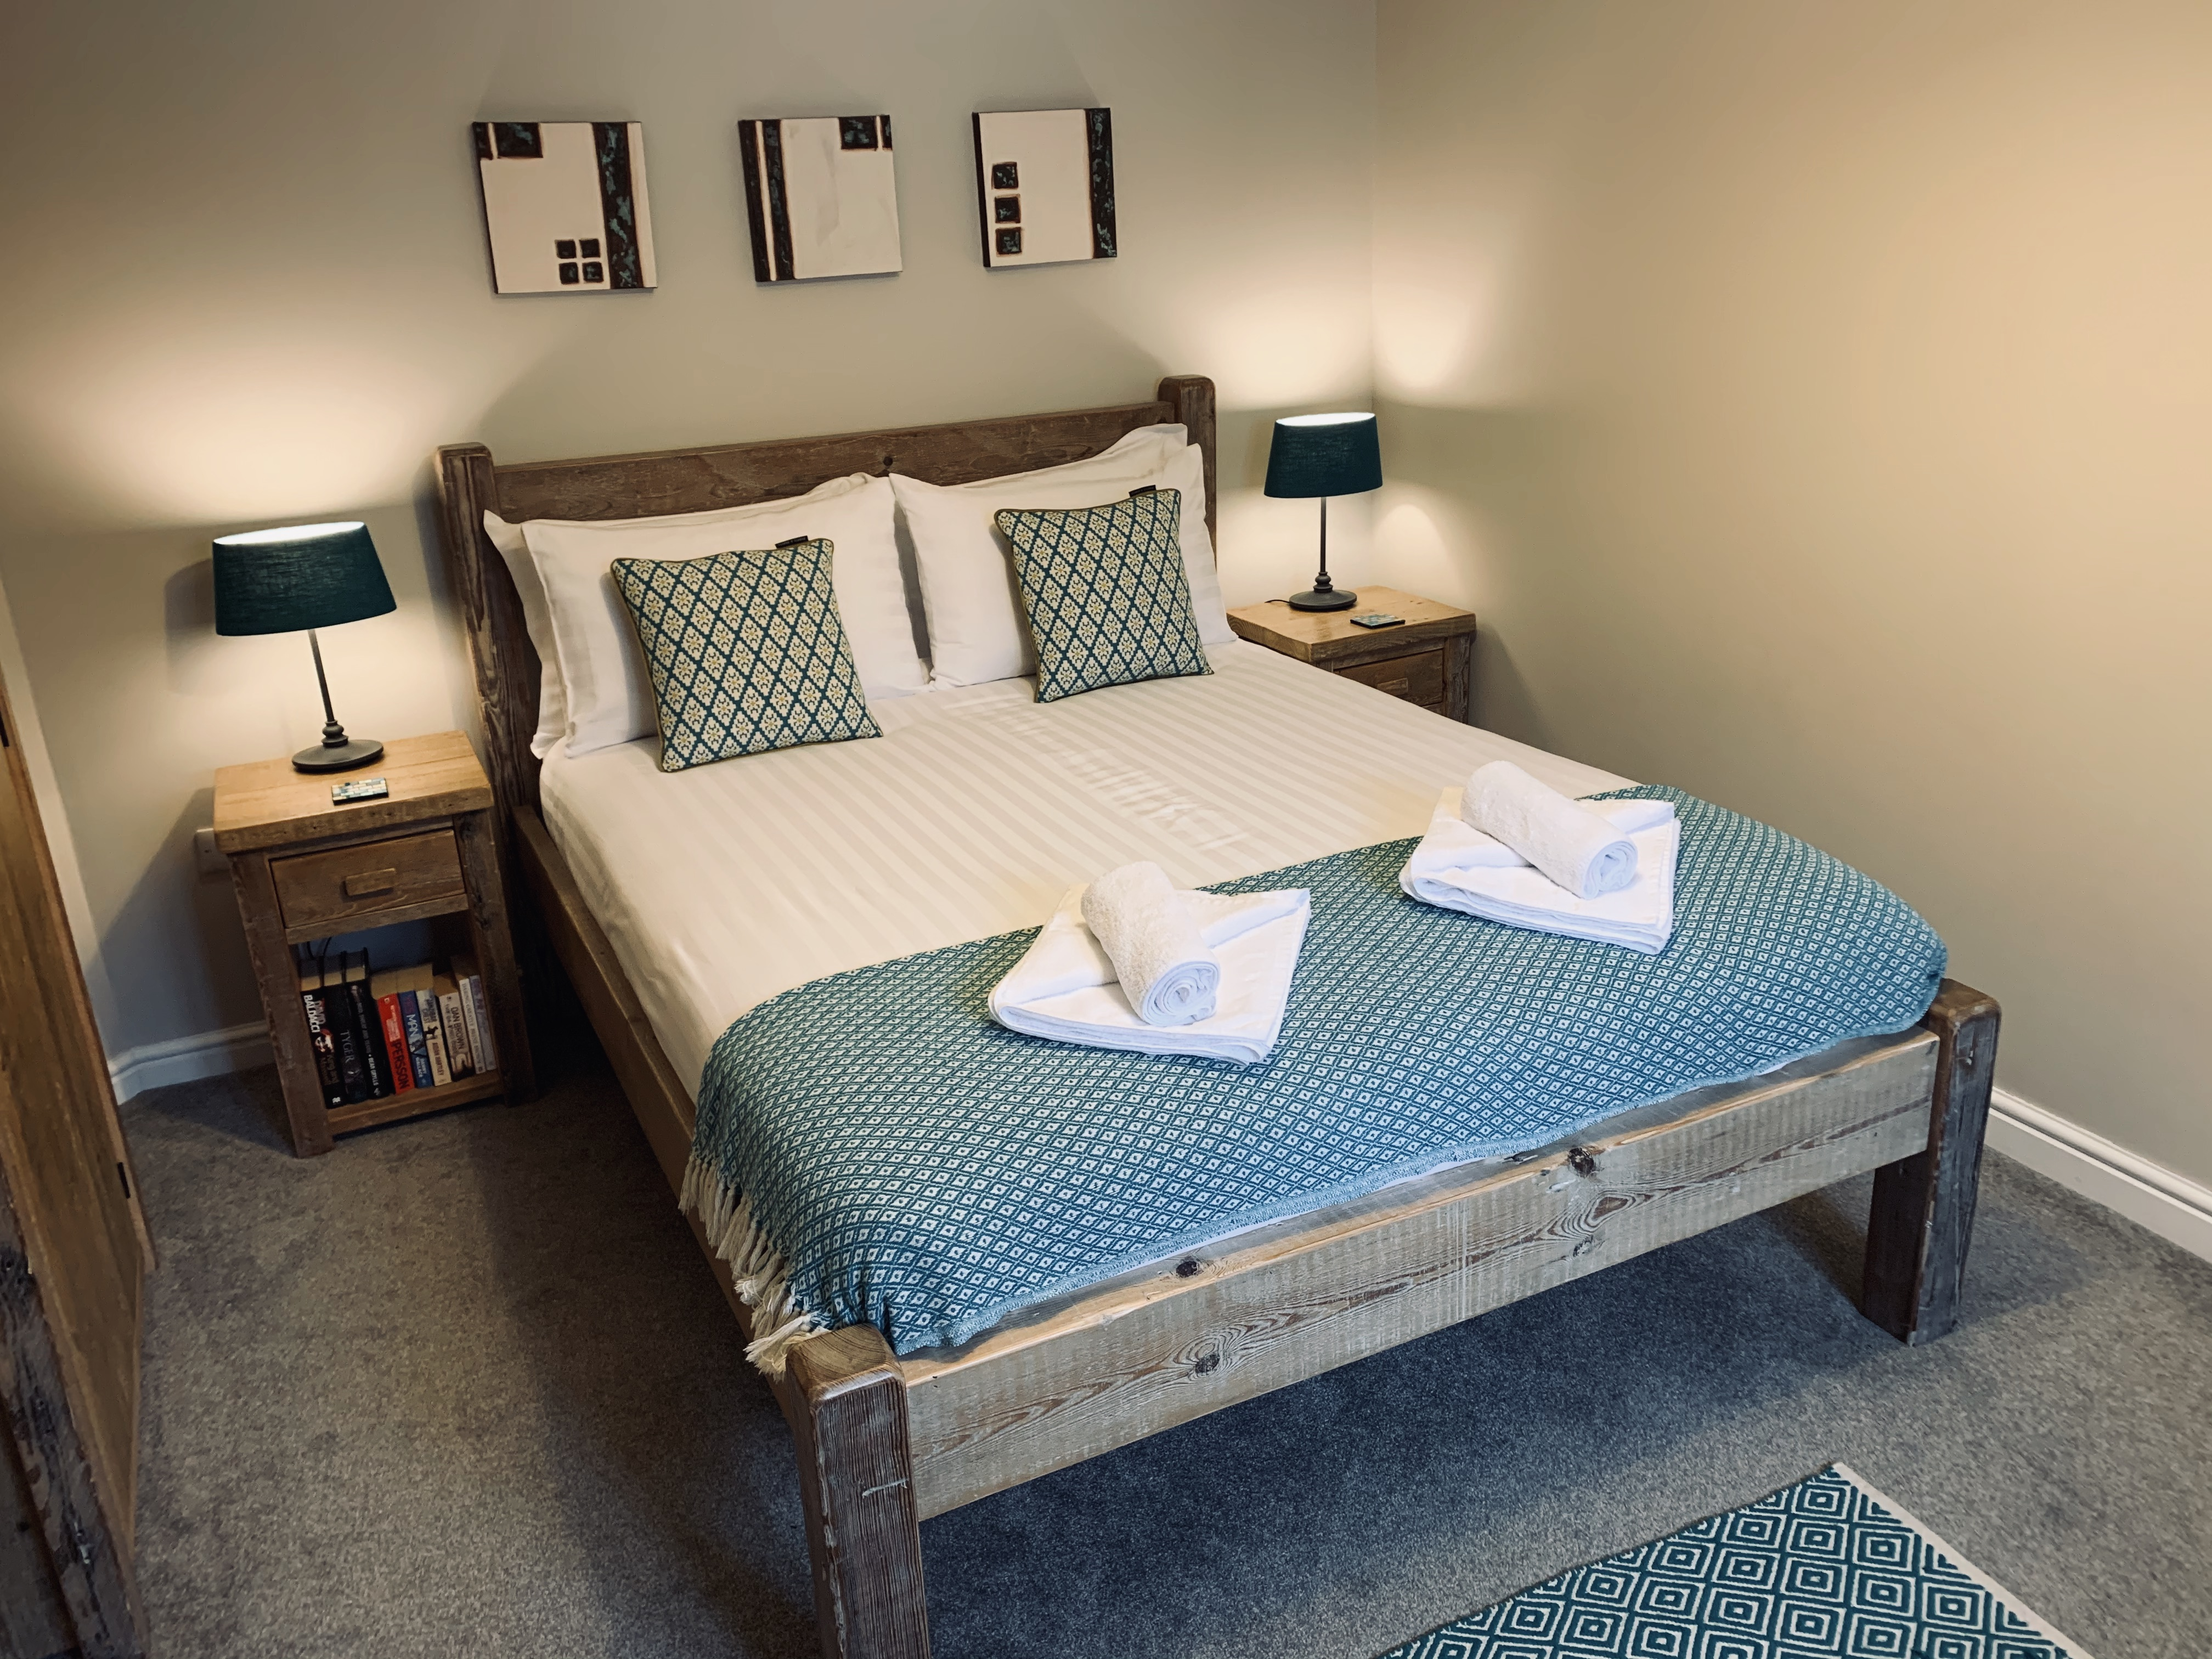 The second king size bedroom ready for new guests at Gwelmor in Widemouth Bay